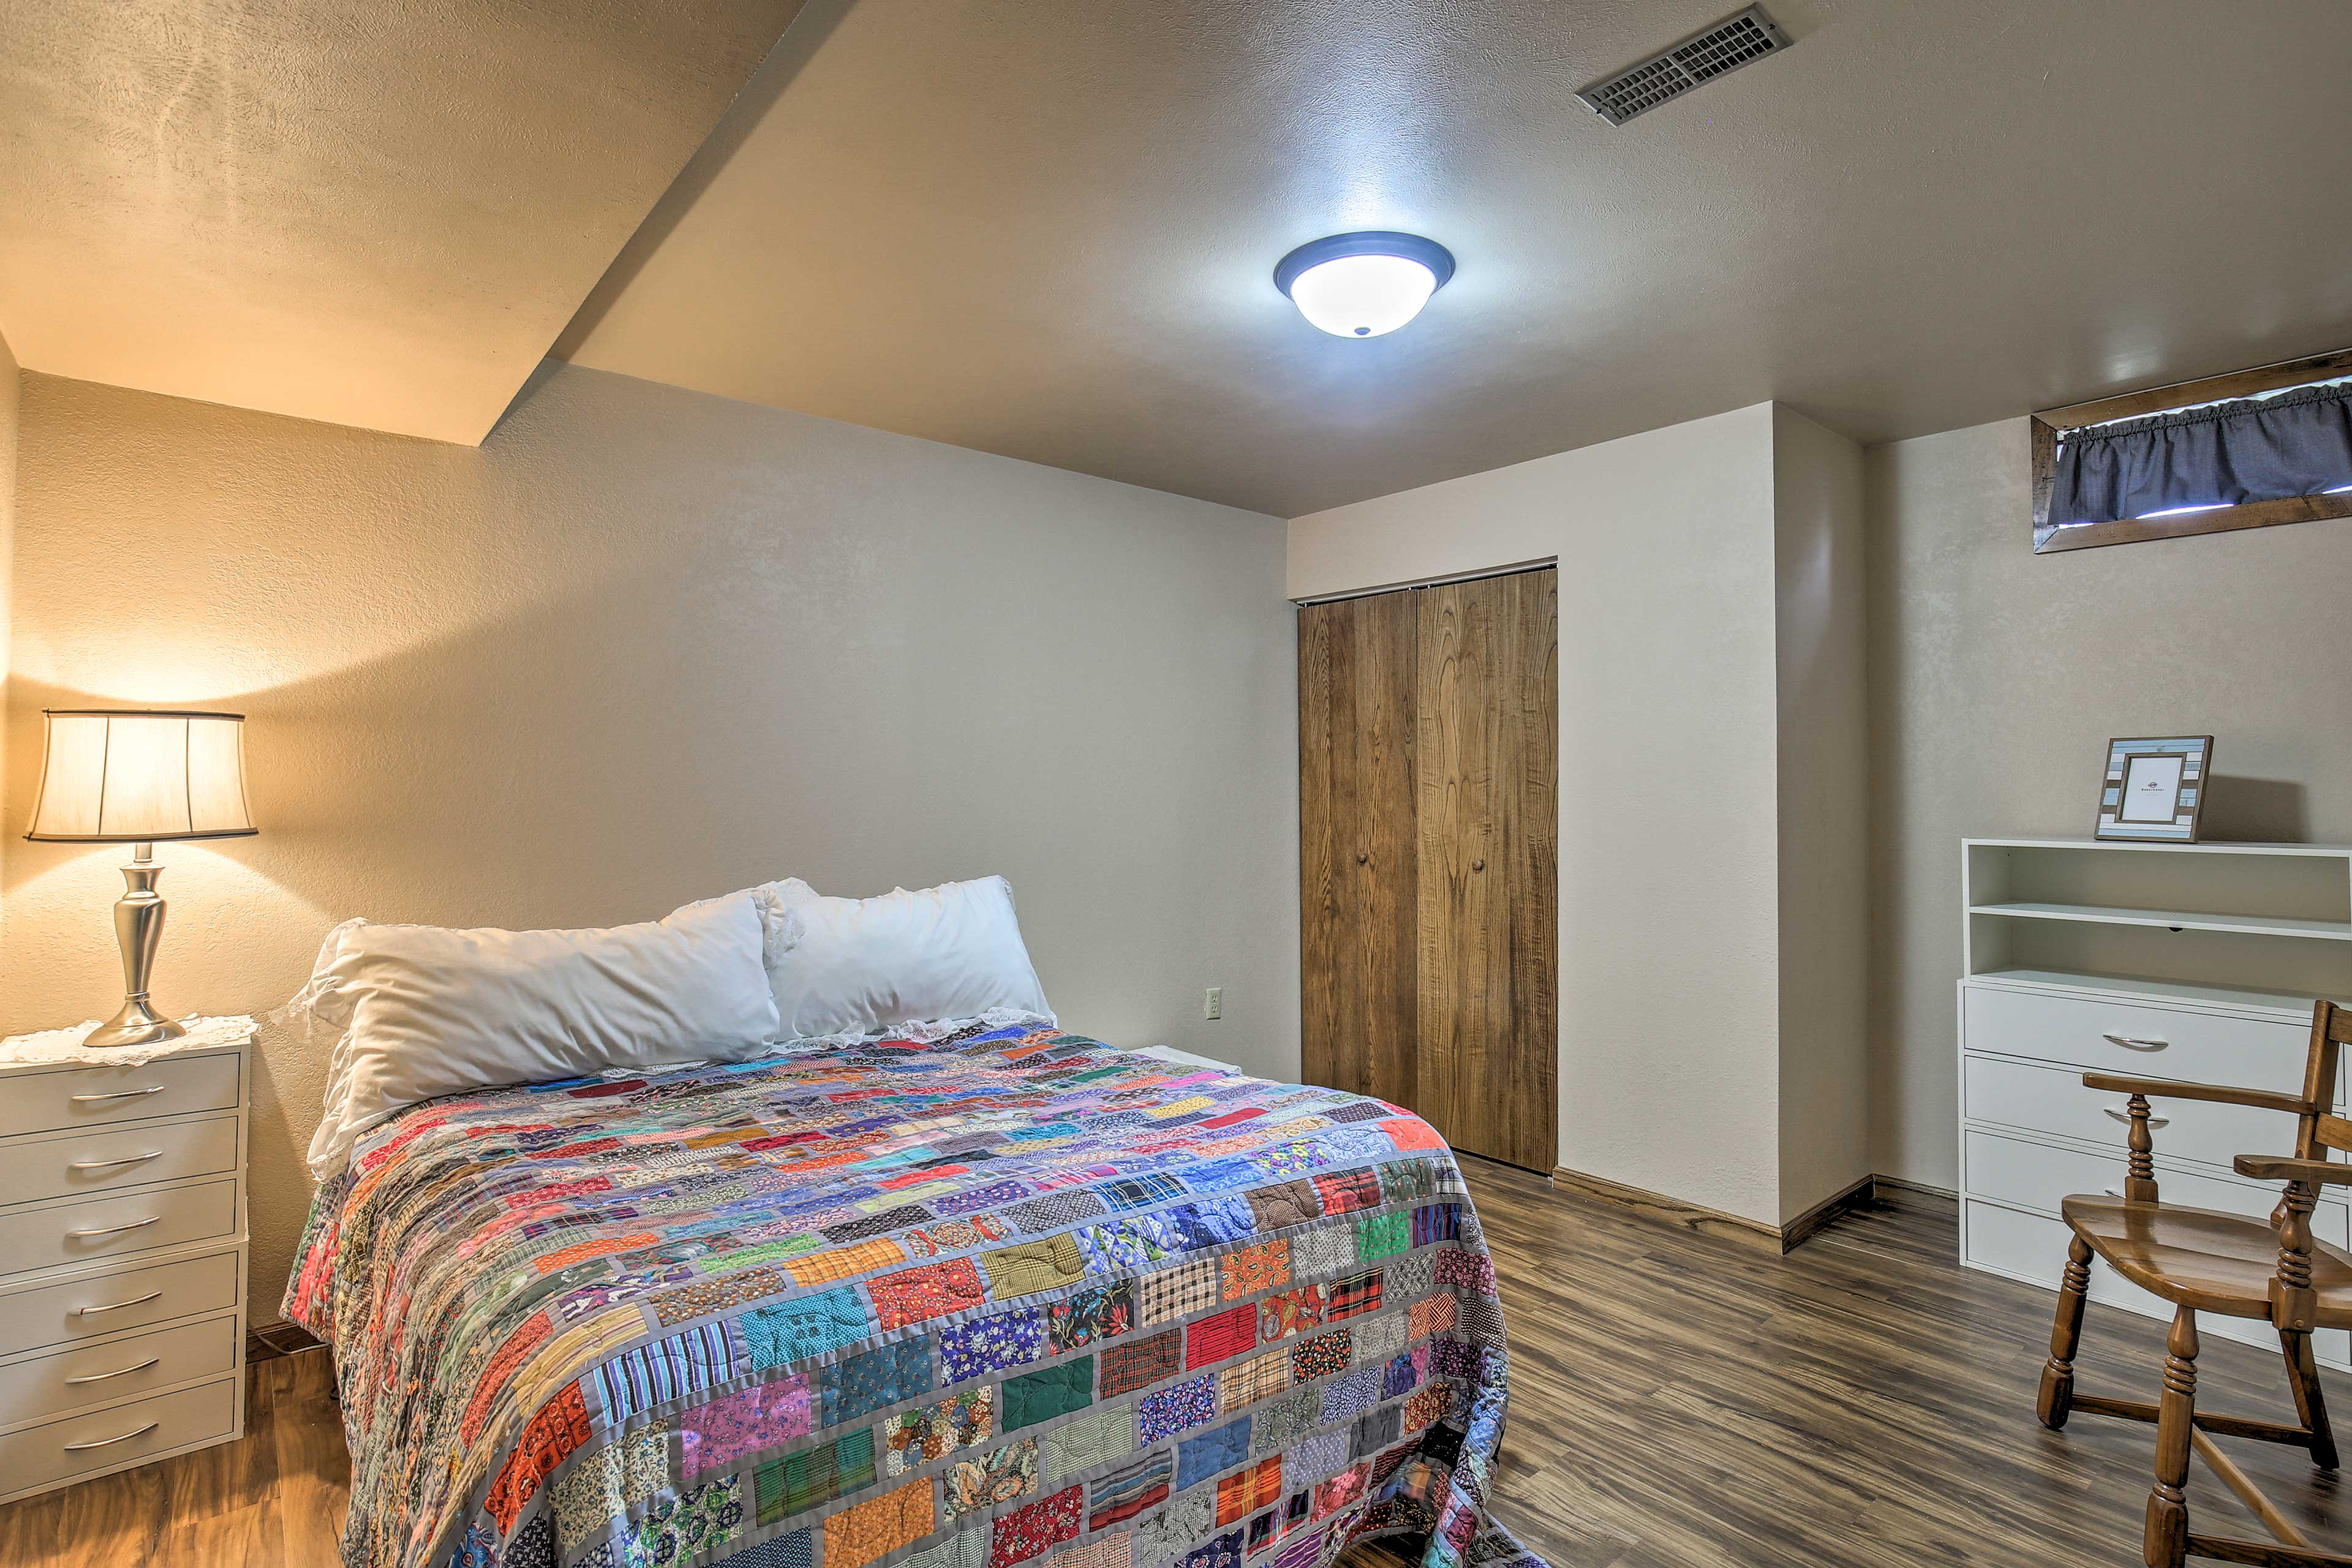 Doze off in the comfortable queen bed in the fourth bedroom.